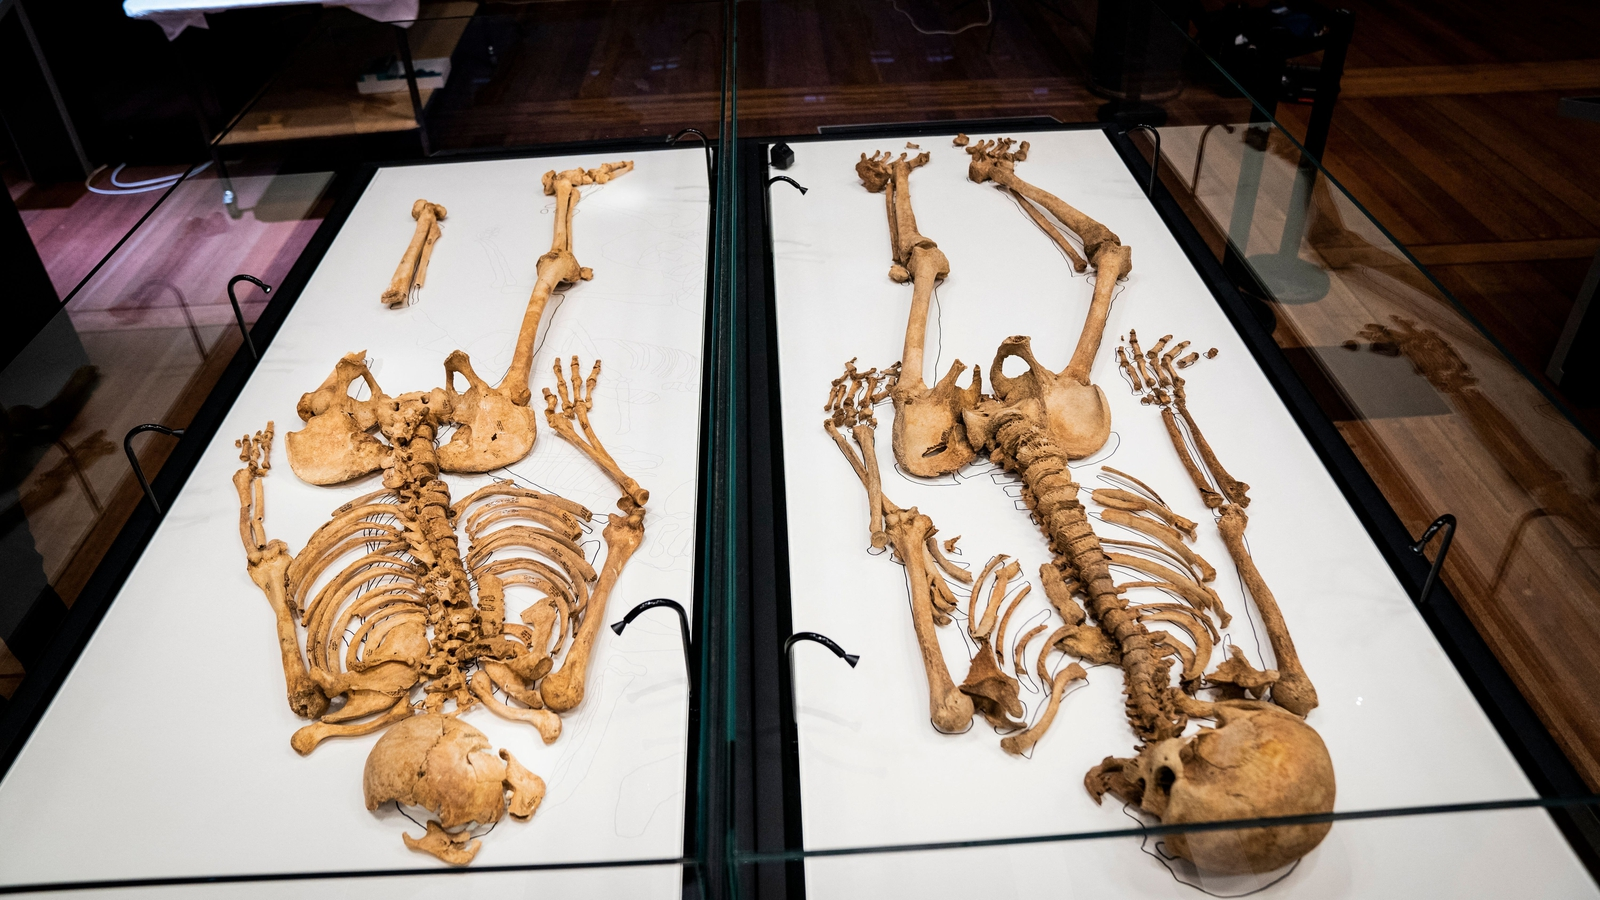 Viking warriors reunited after 1,000 years apart